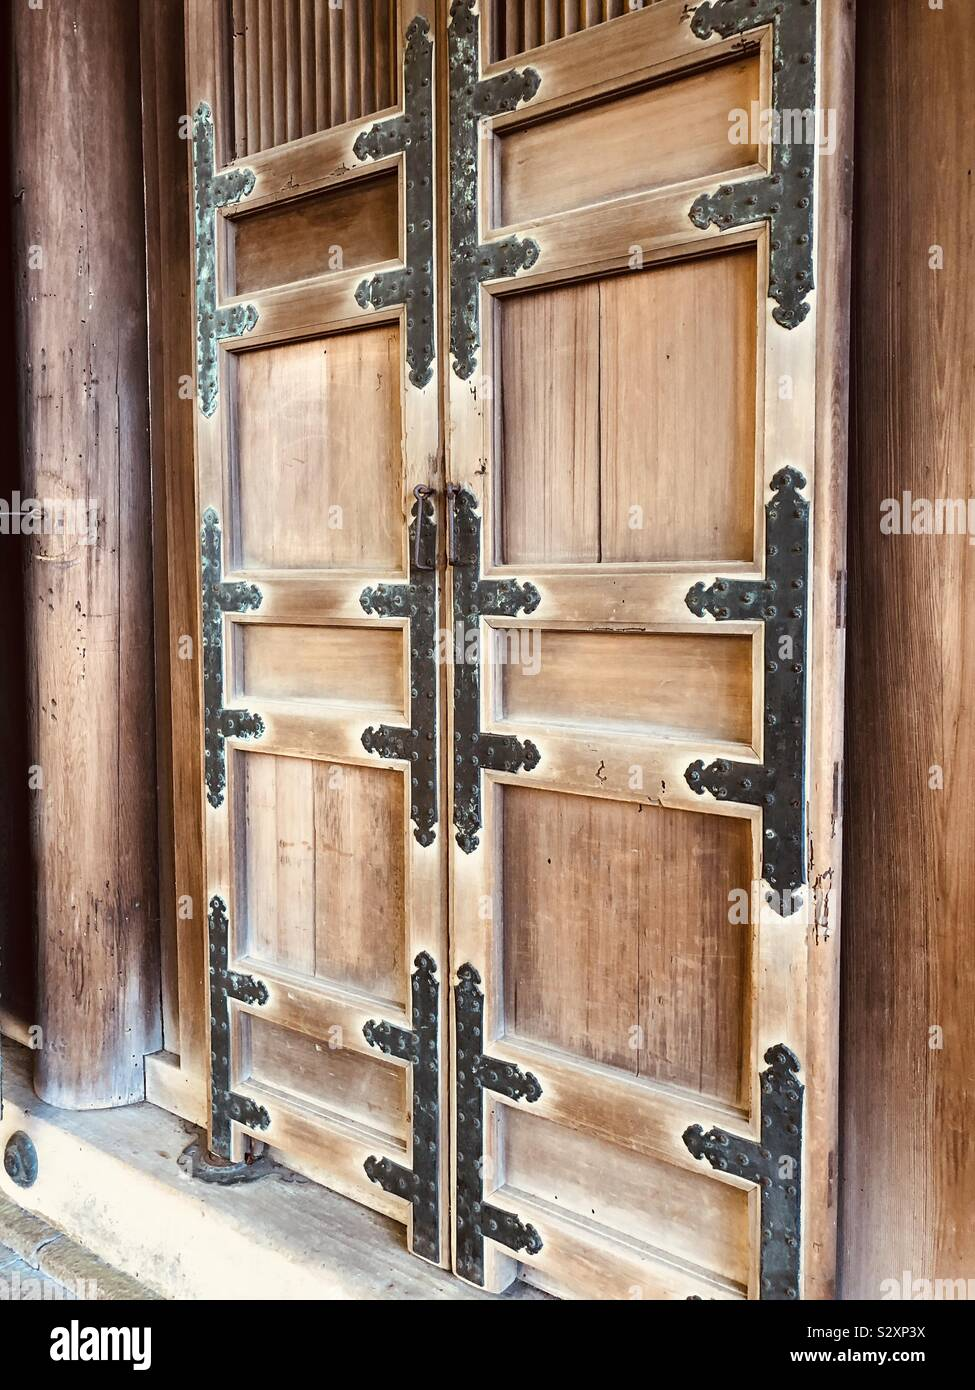 Japanese Doorway High Resolution Stock Photography And Images Alamy